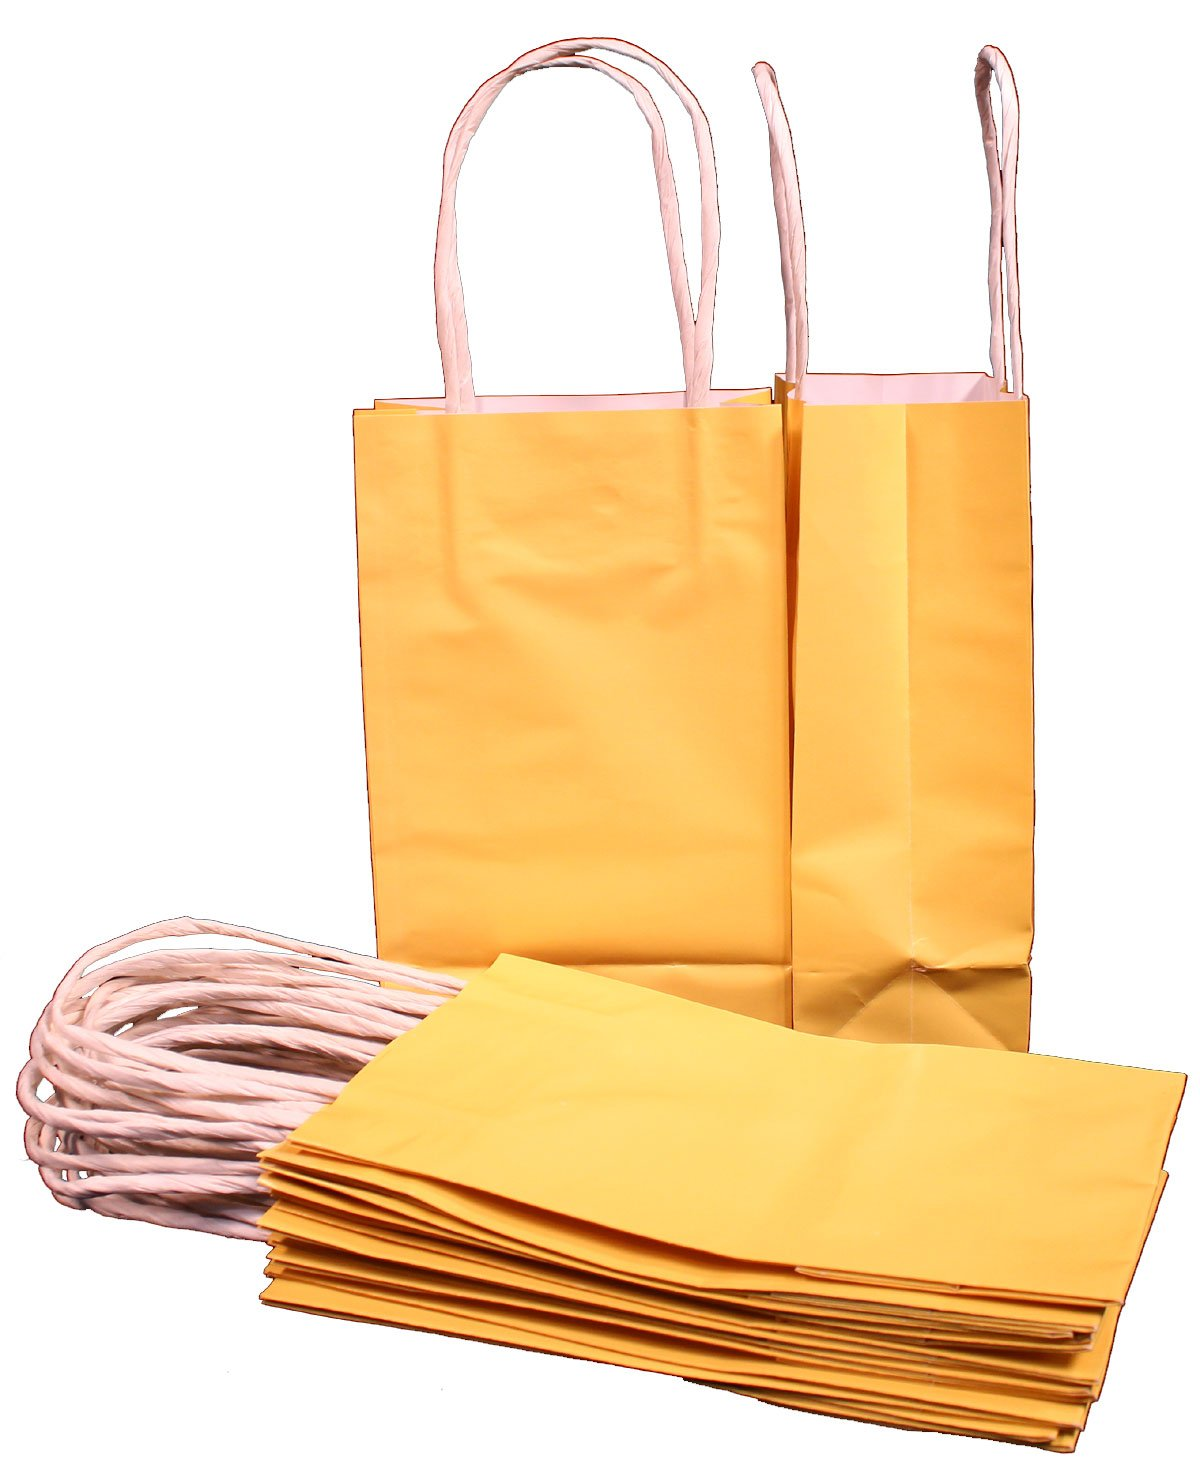 Paper bag yellow - Amazon Com Creative Hobbies 24 Yellow Small Paper Gift Handle Bags Approx 5 25 X 3 X 8 5 Size Shopper Wedding Wholesale Lot Home Kitchen